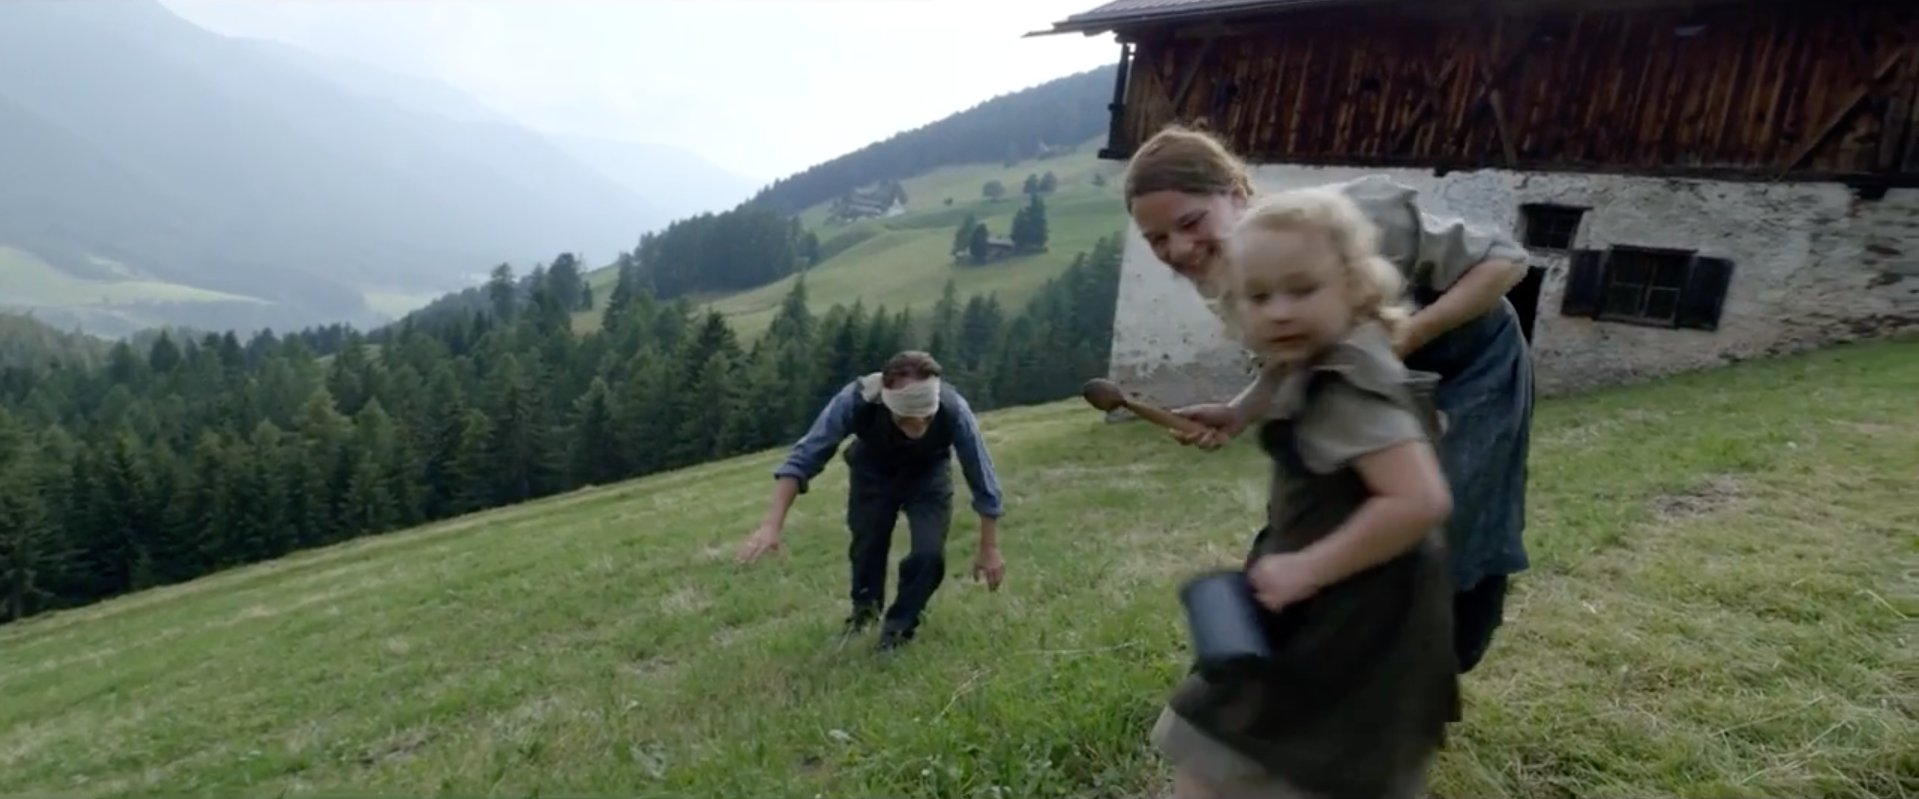 grass outdoor sky clothing person little human face hiking young nature smile mountain boy tree girl woman toddler highland